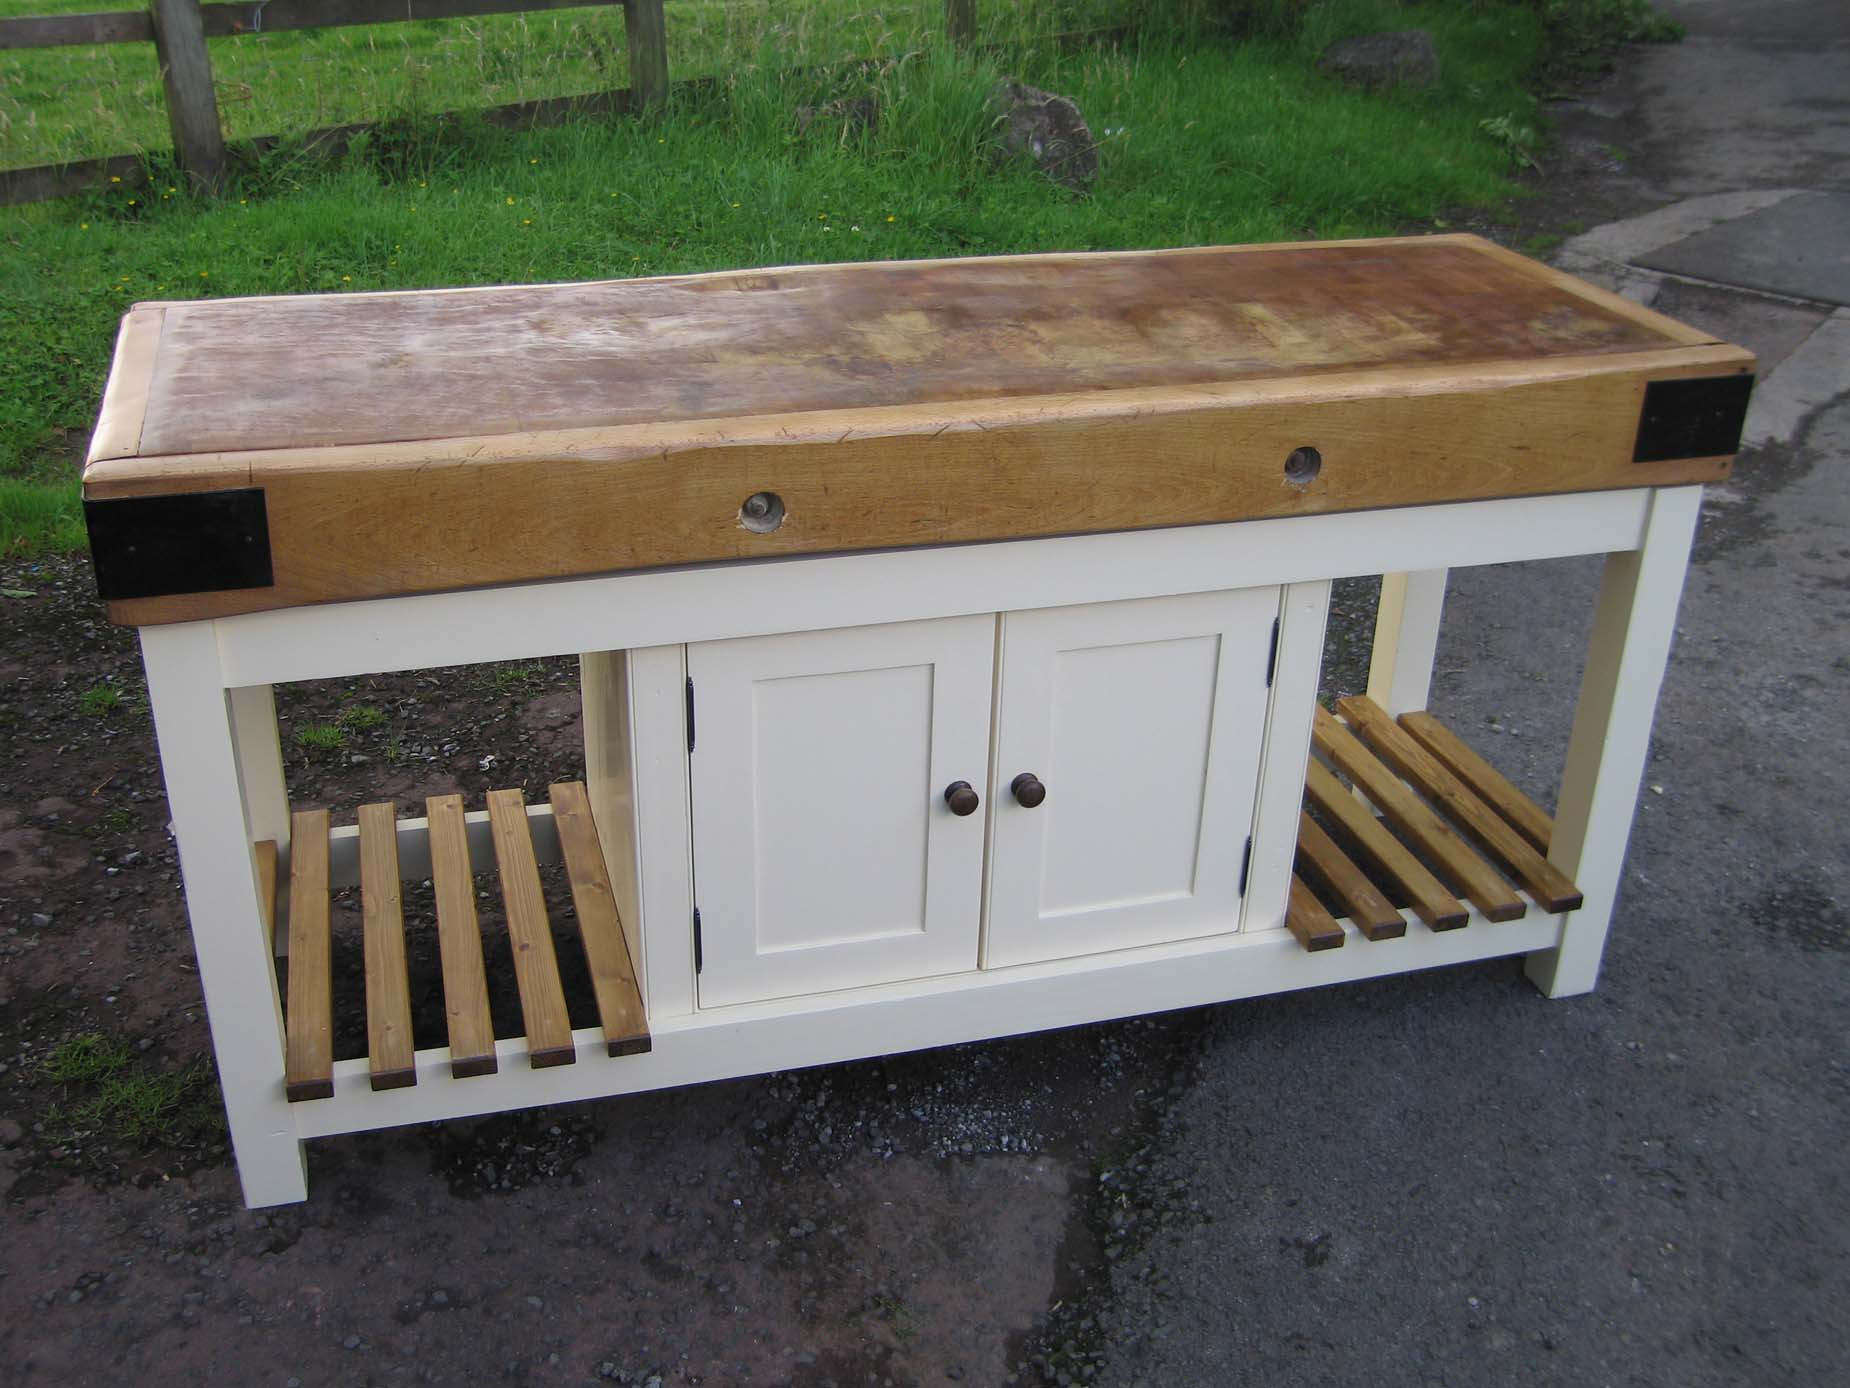 ministry pine antique pine furniture standing kitchens bespoke furniture handmade kitchen designs warwickshire uk